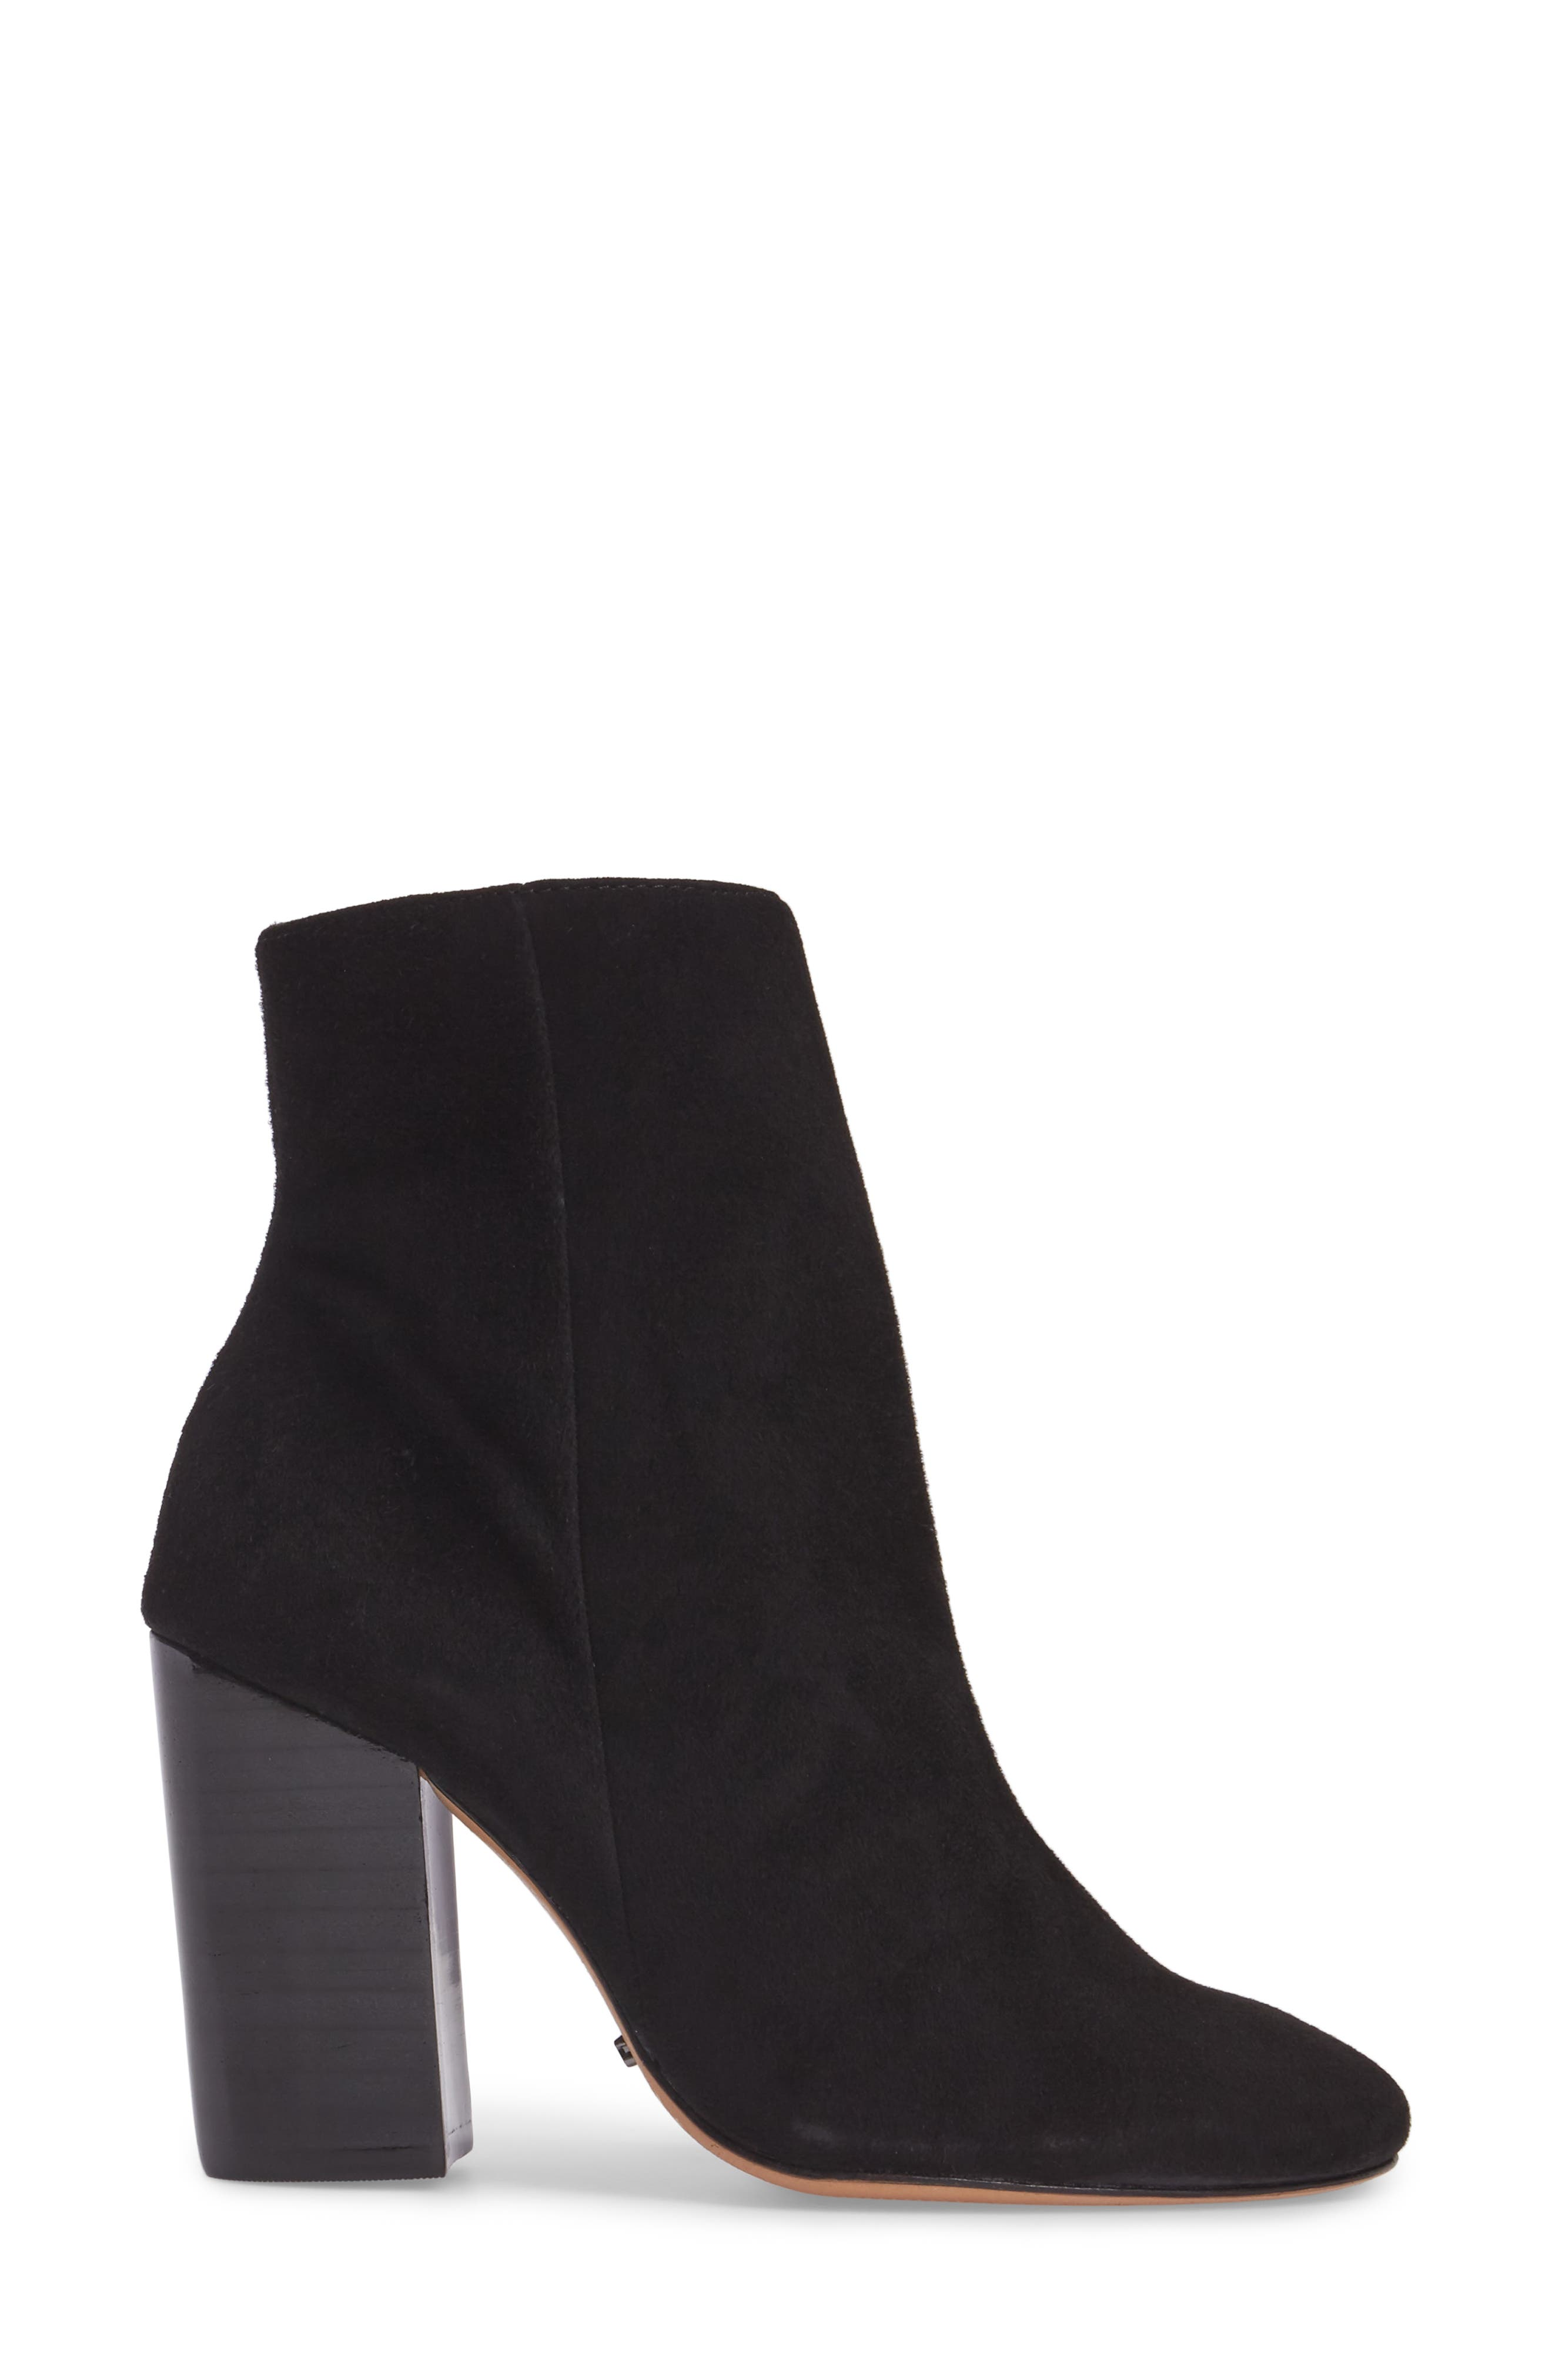 Ravan Block Heel Bootie,                             Alternate thumbnail 3, color,                             001